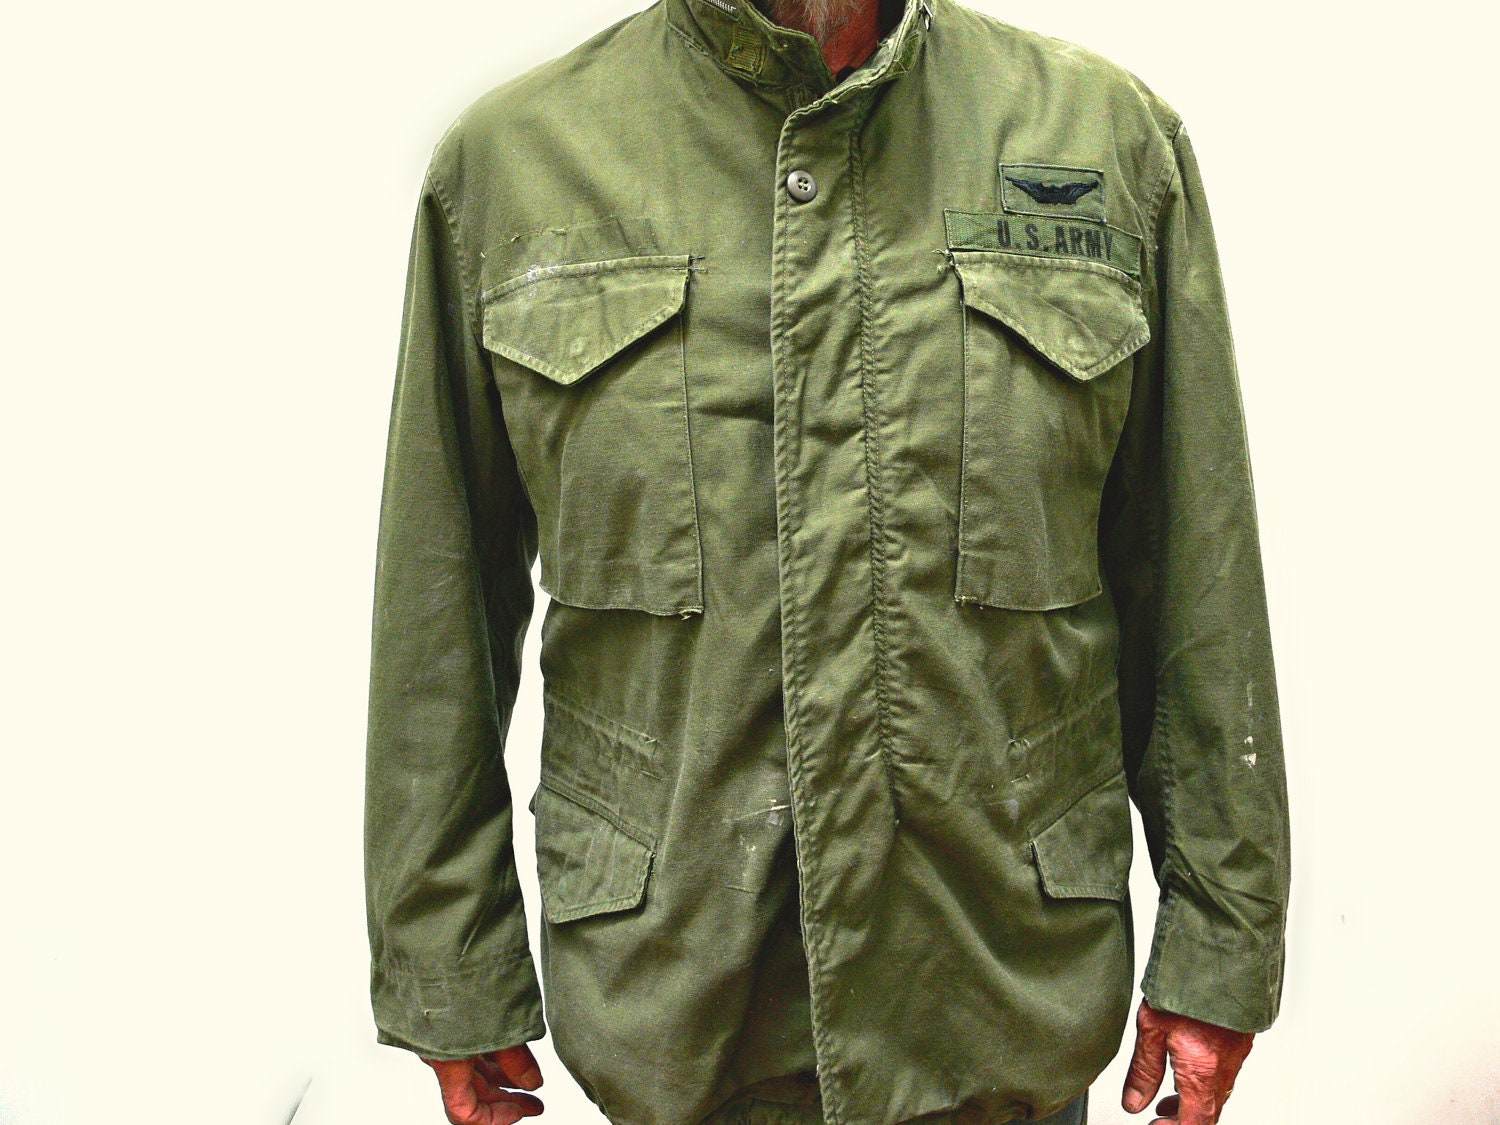 Military Uniform Supply specializes in U.S. Military uniforms and military clothing at competitive prices. As one of the leading and most comprehensive online military supply stores, Military Uniform Supply offers a complete selection of army and military-issue items for sale.